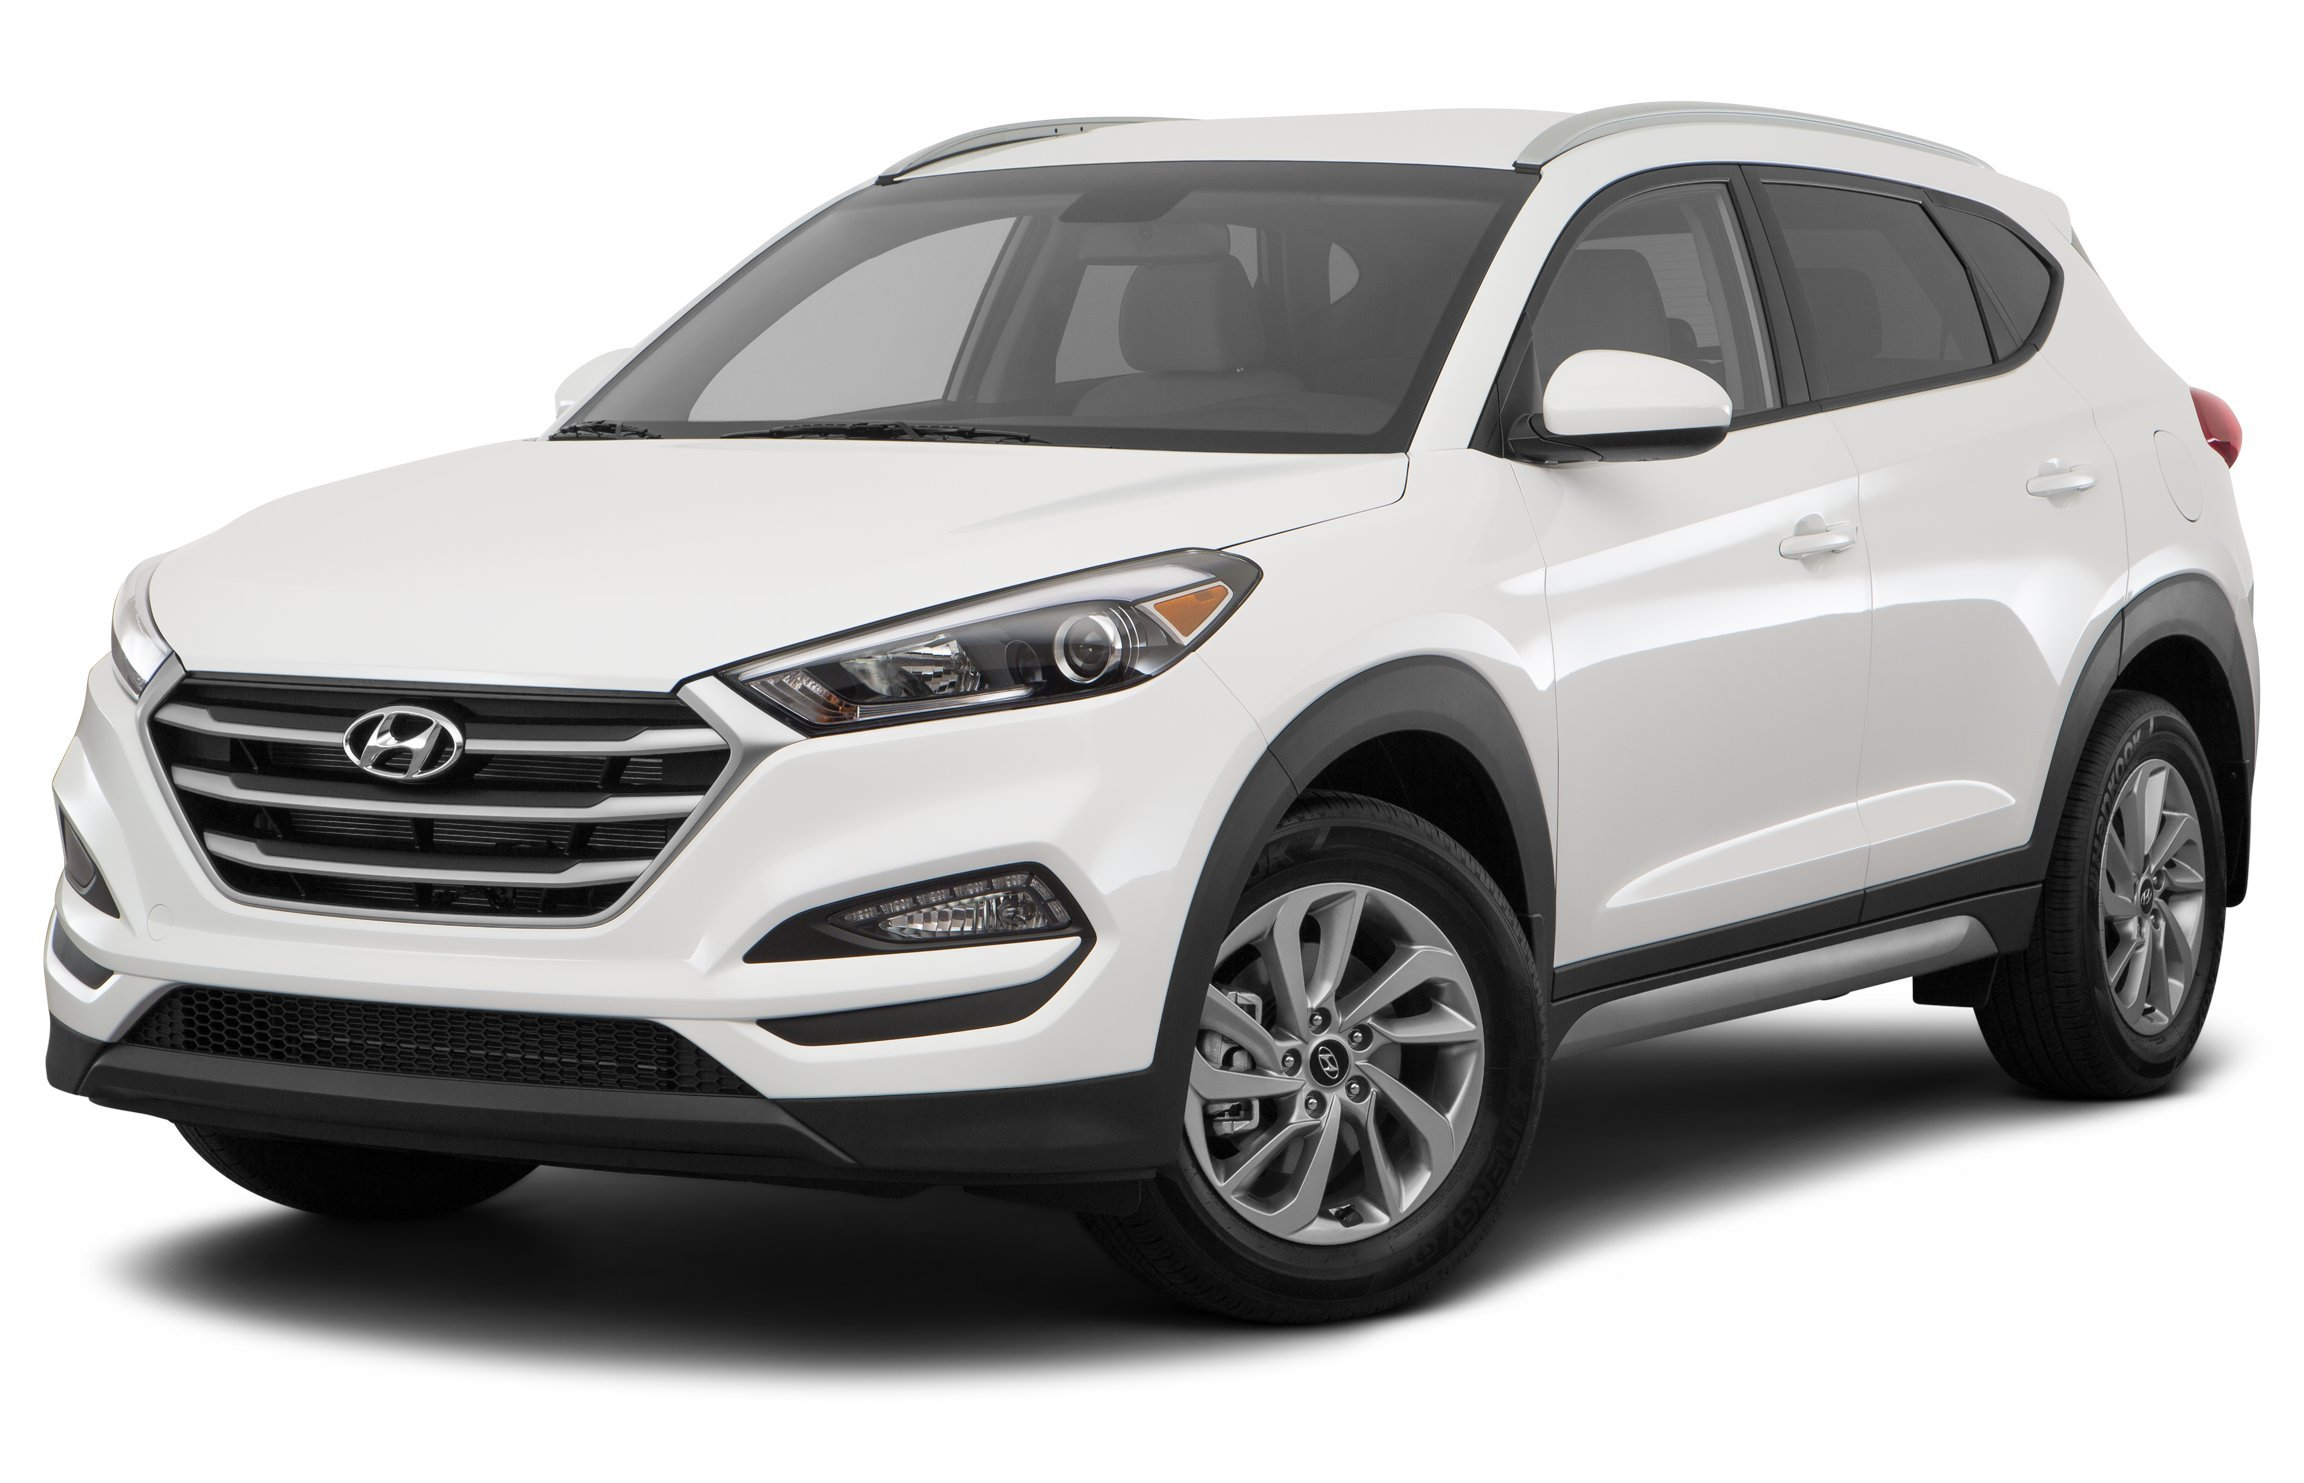 2017 hyundai tucson reviews images and specs. Black Bedroom Furniture Sets. Home Design Ideas